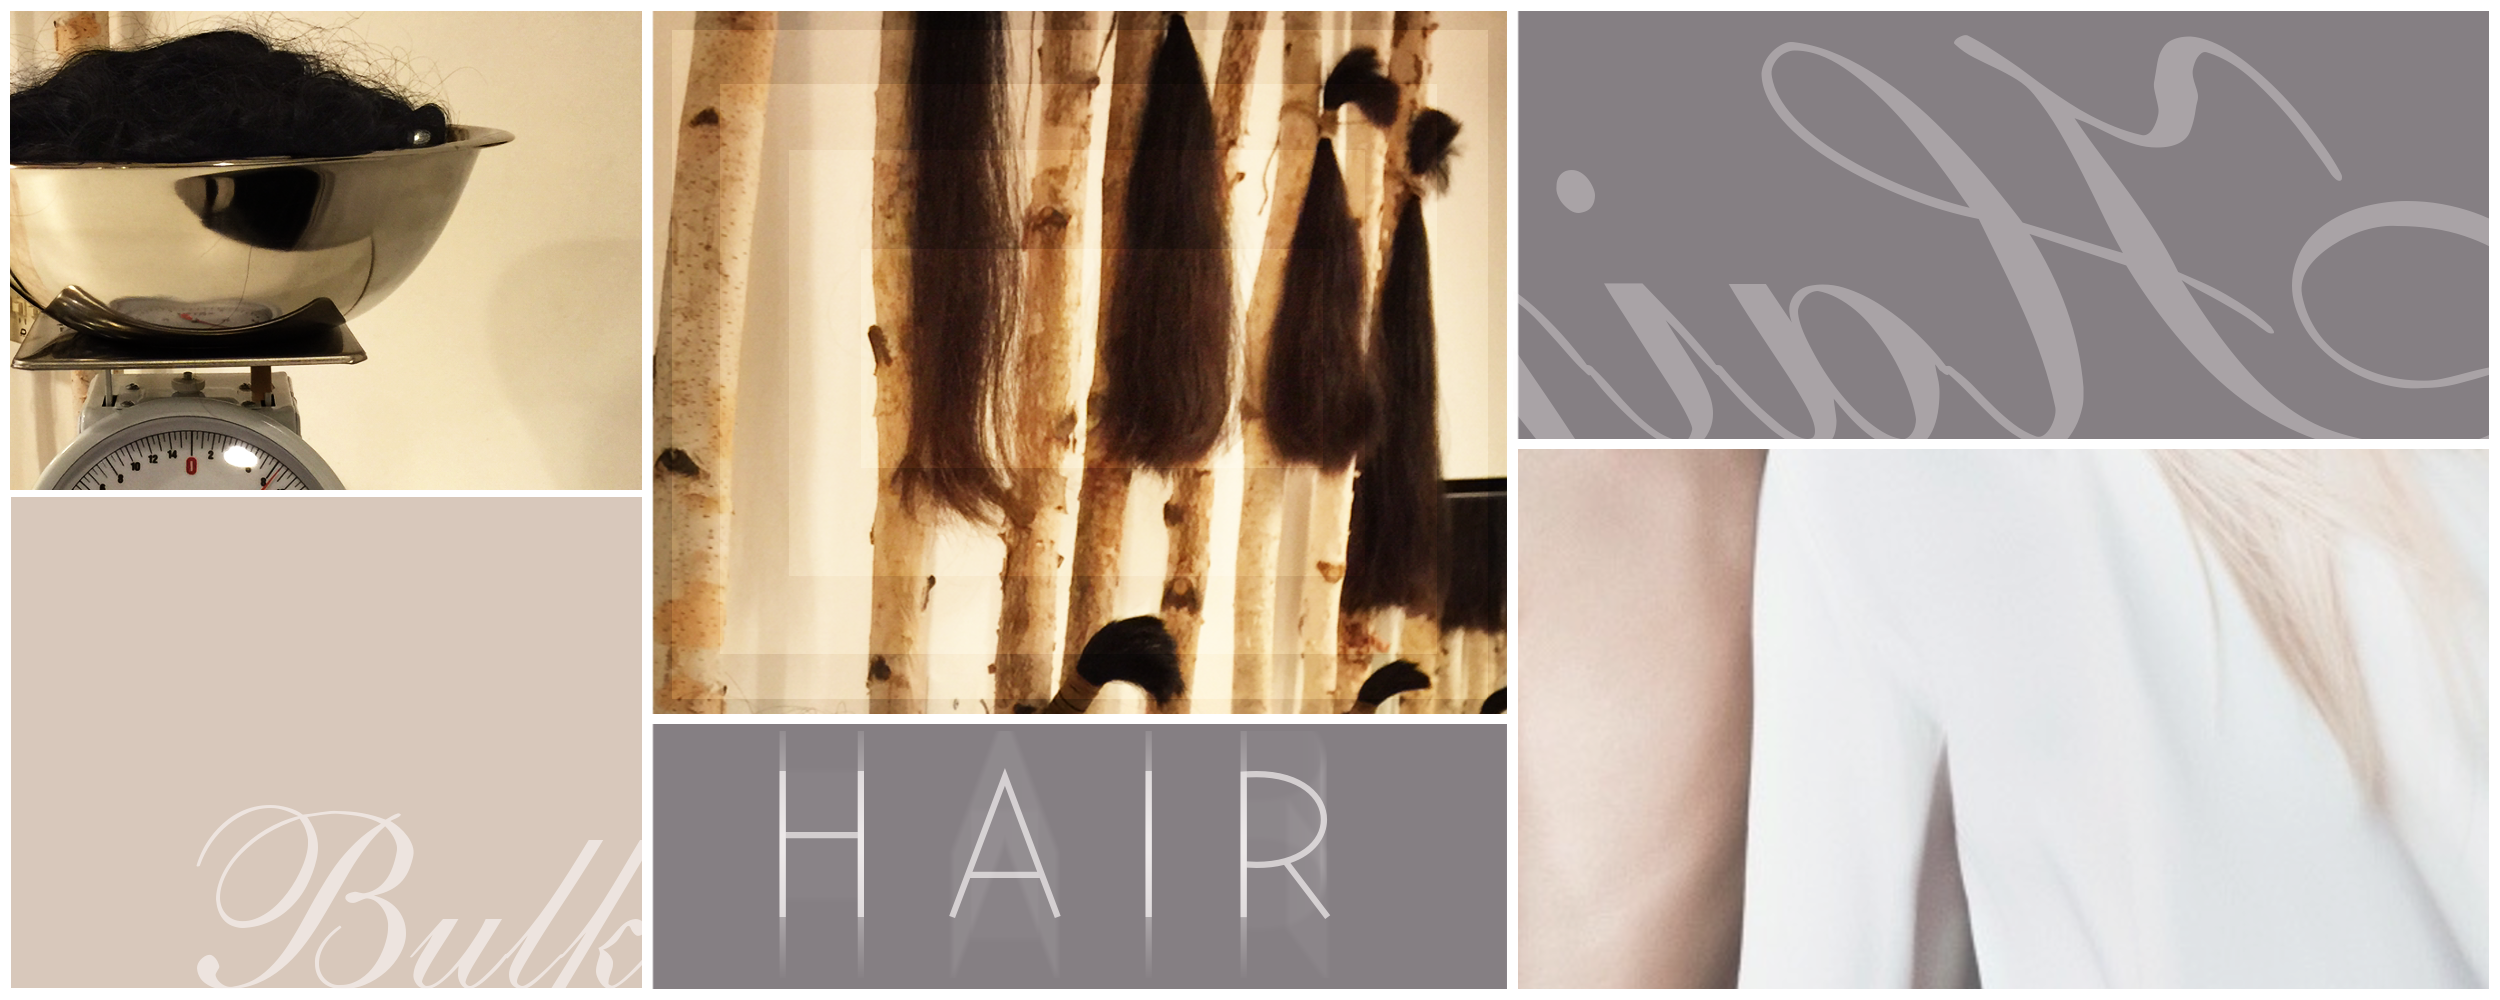 Hair extensions are offered in bulk at our LHP raw hair bar here in New York